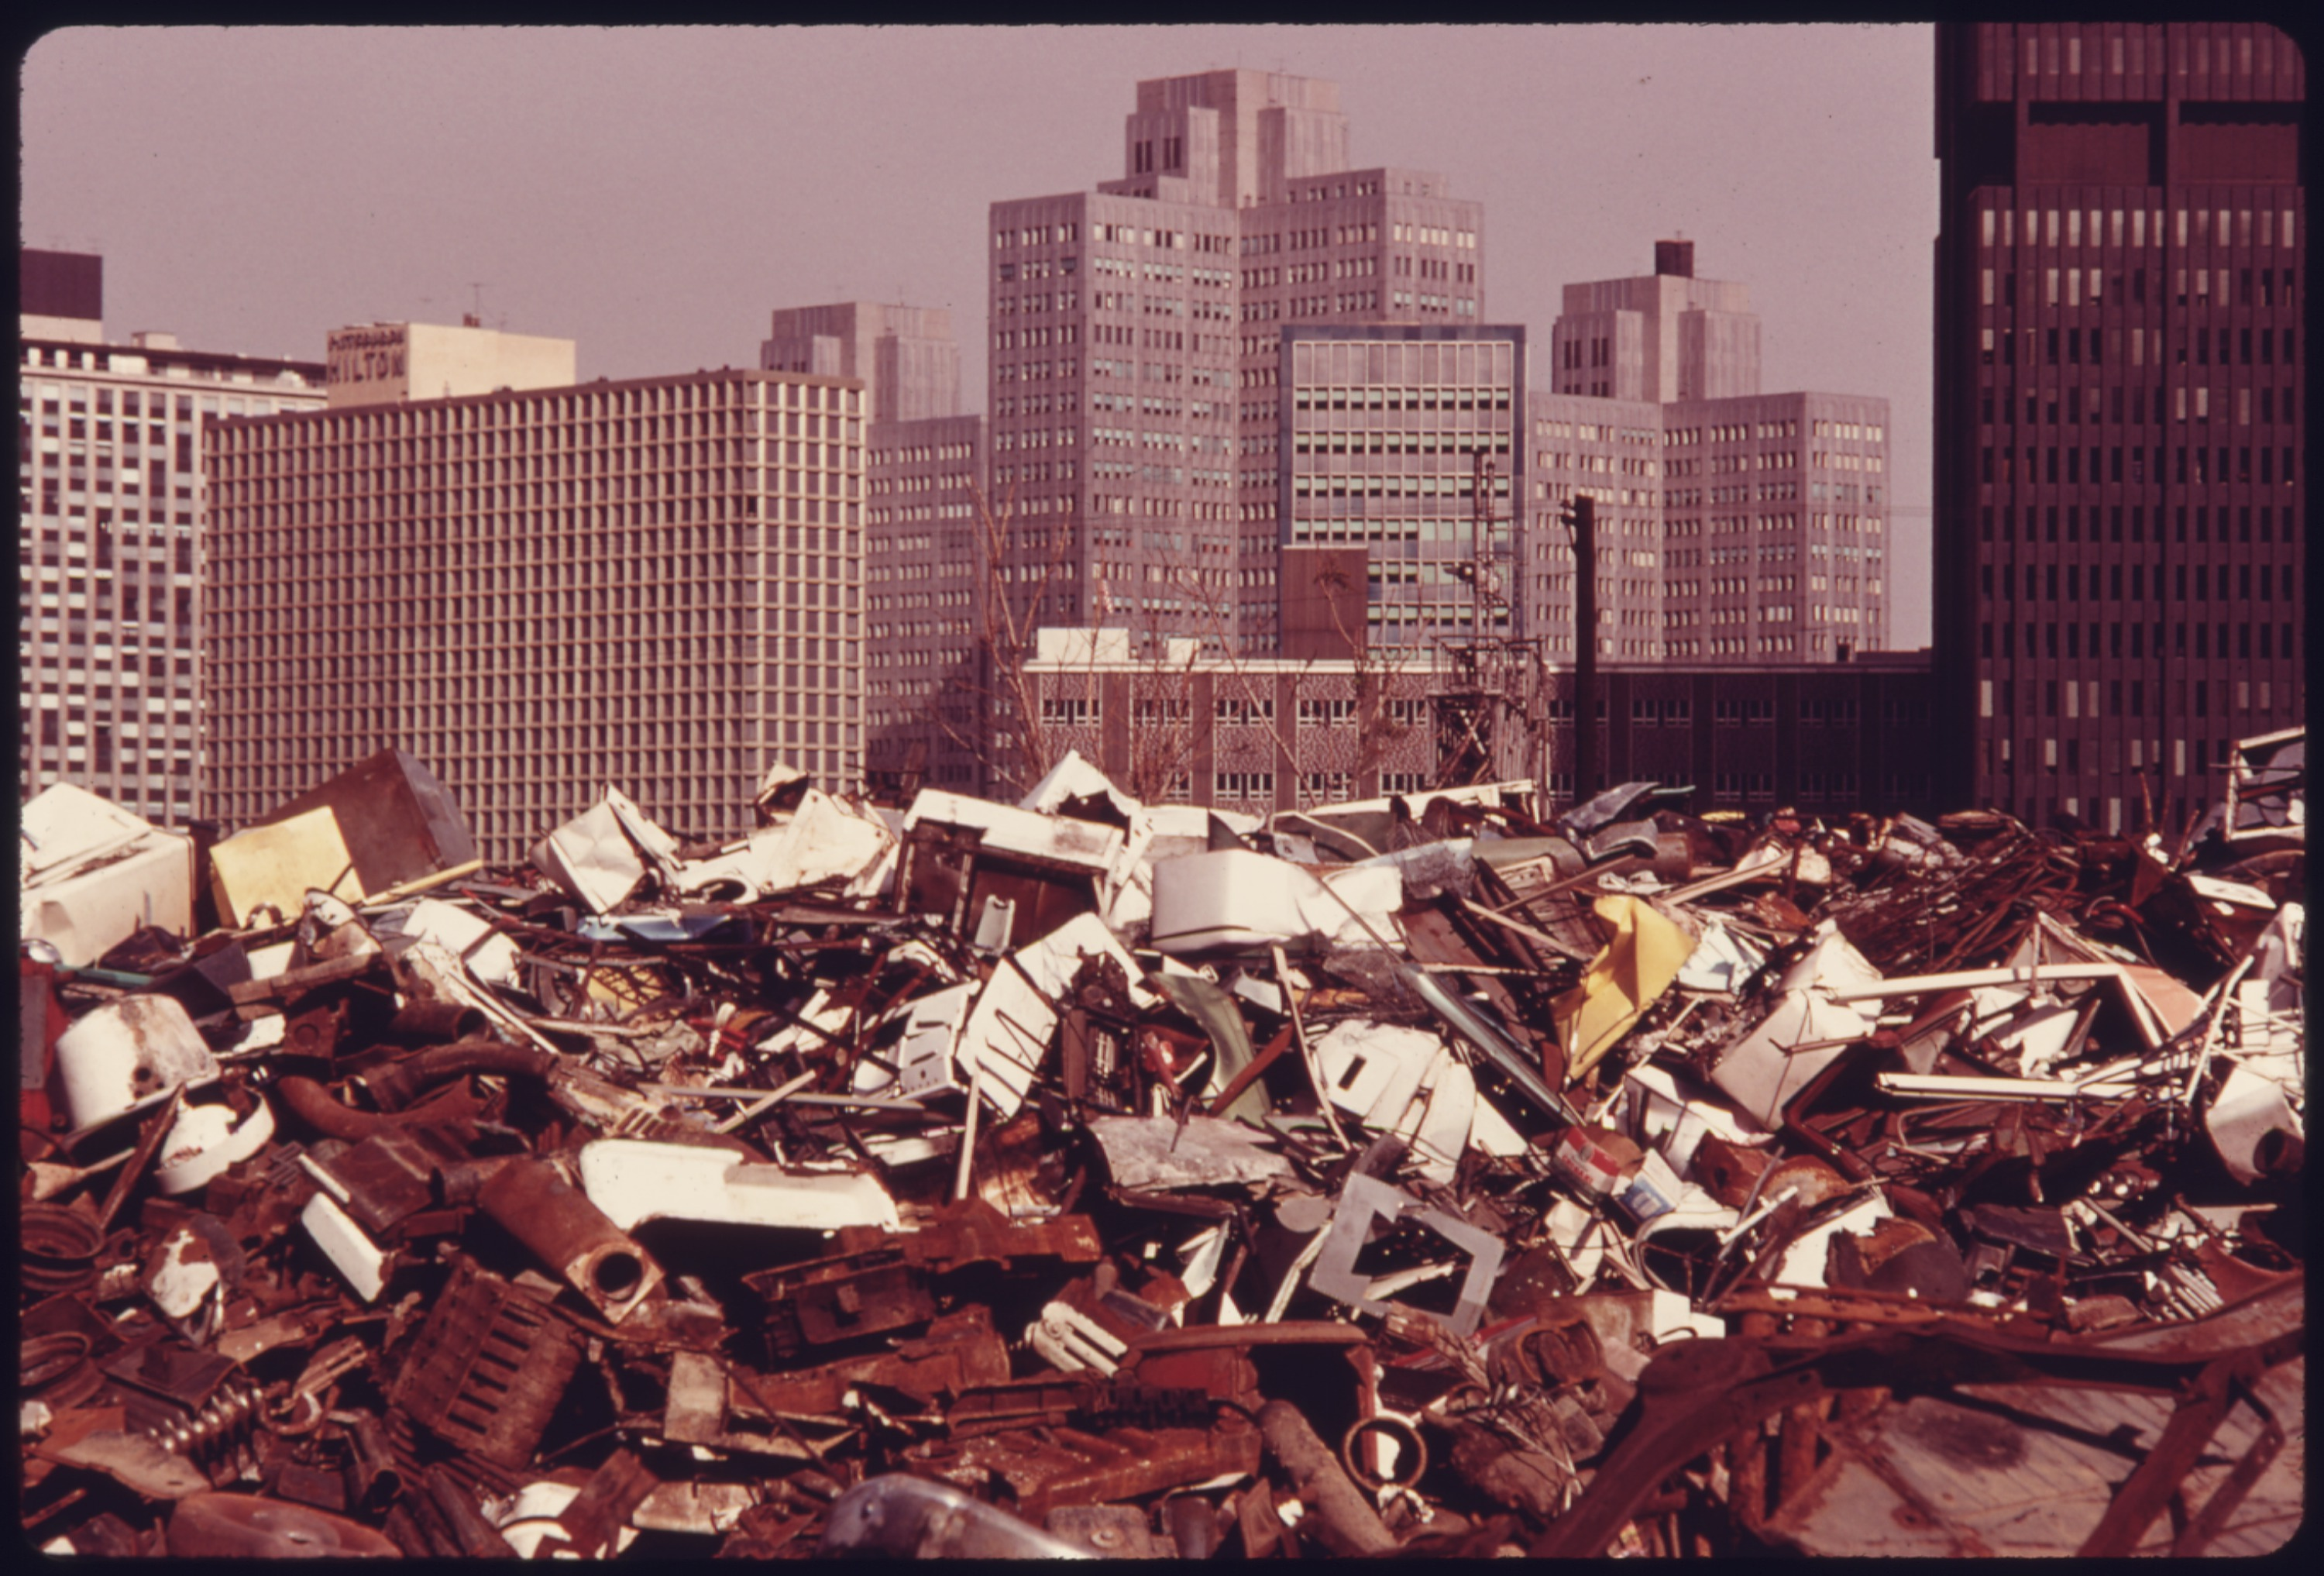 File:JUNKYARD ACROSS THE MONONGAHELA RIVER CONTRASTS WITH THE ...